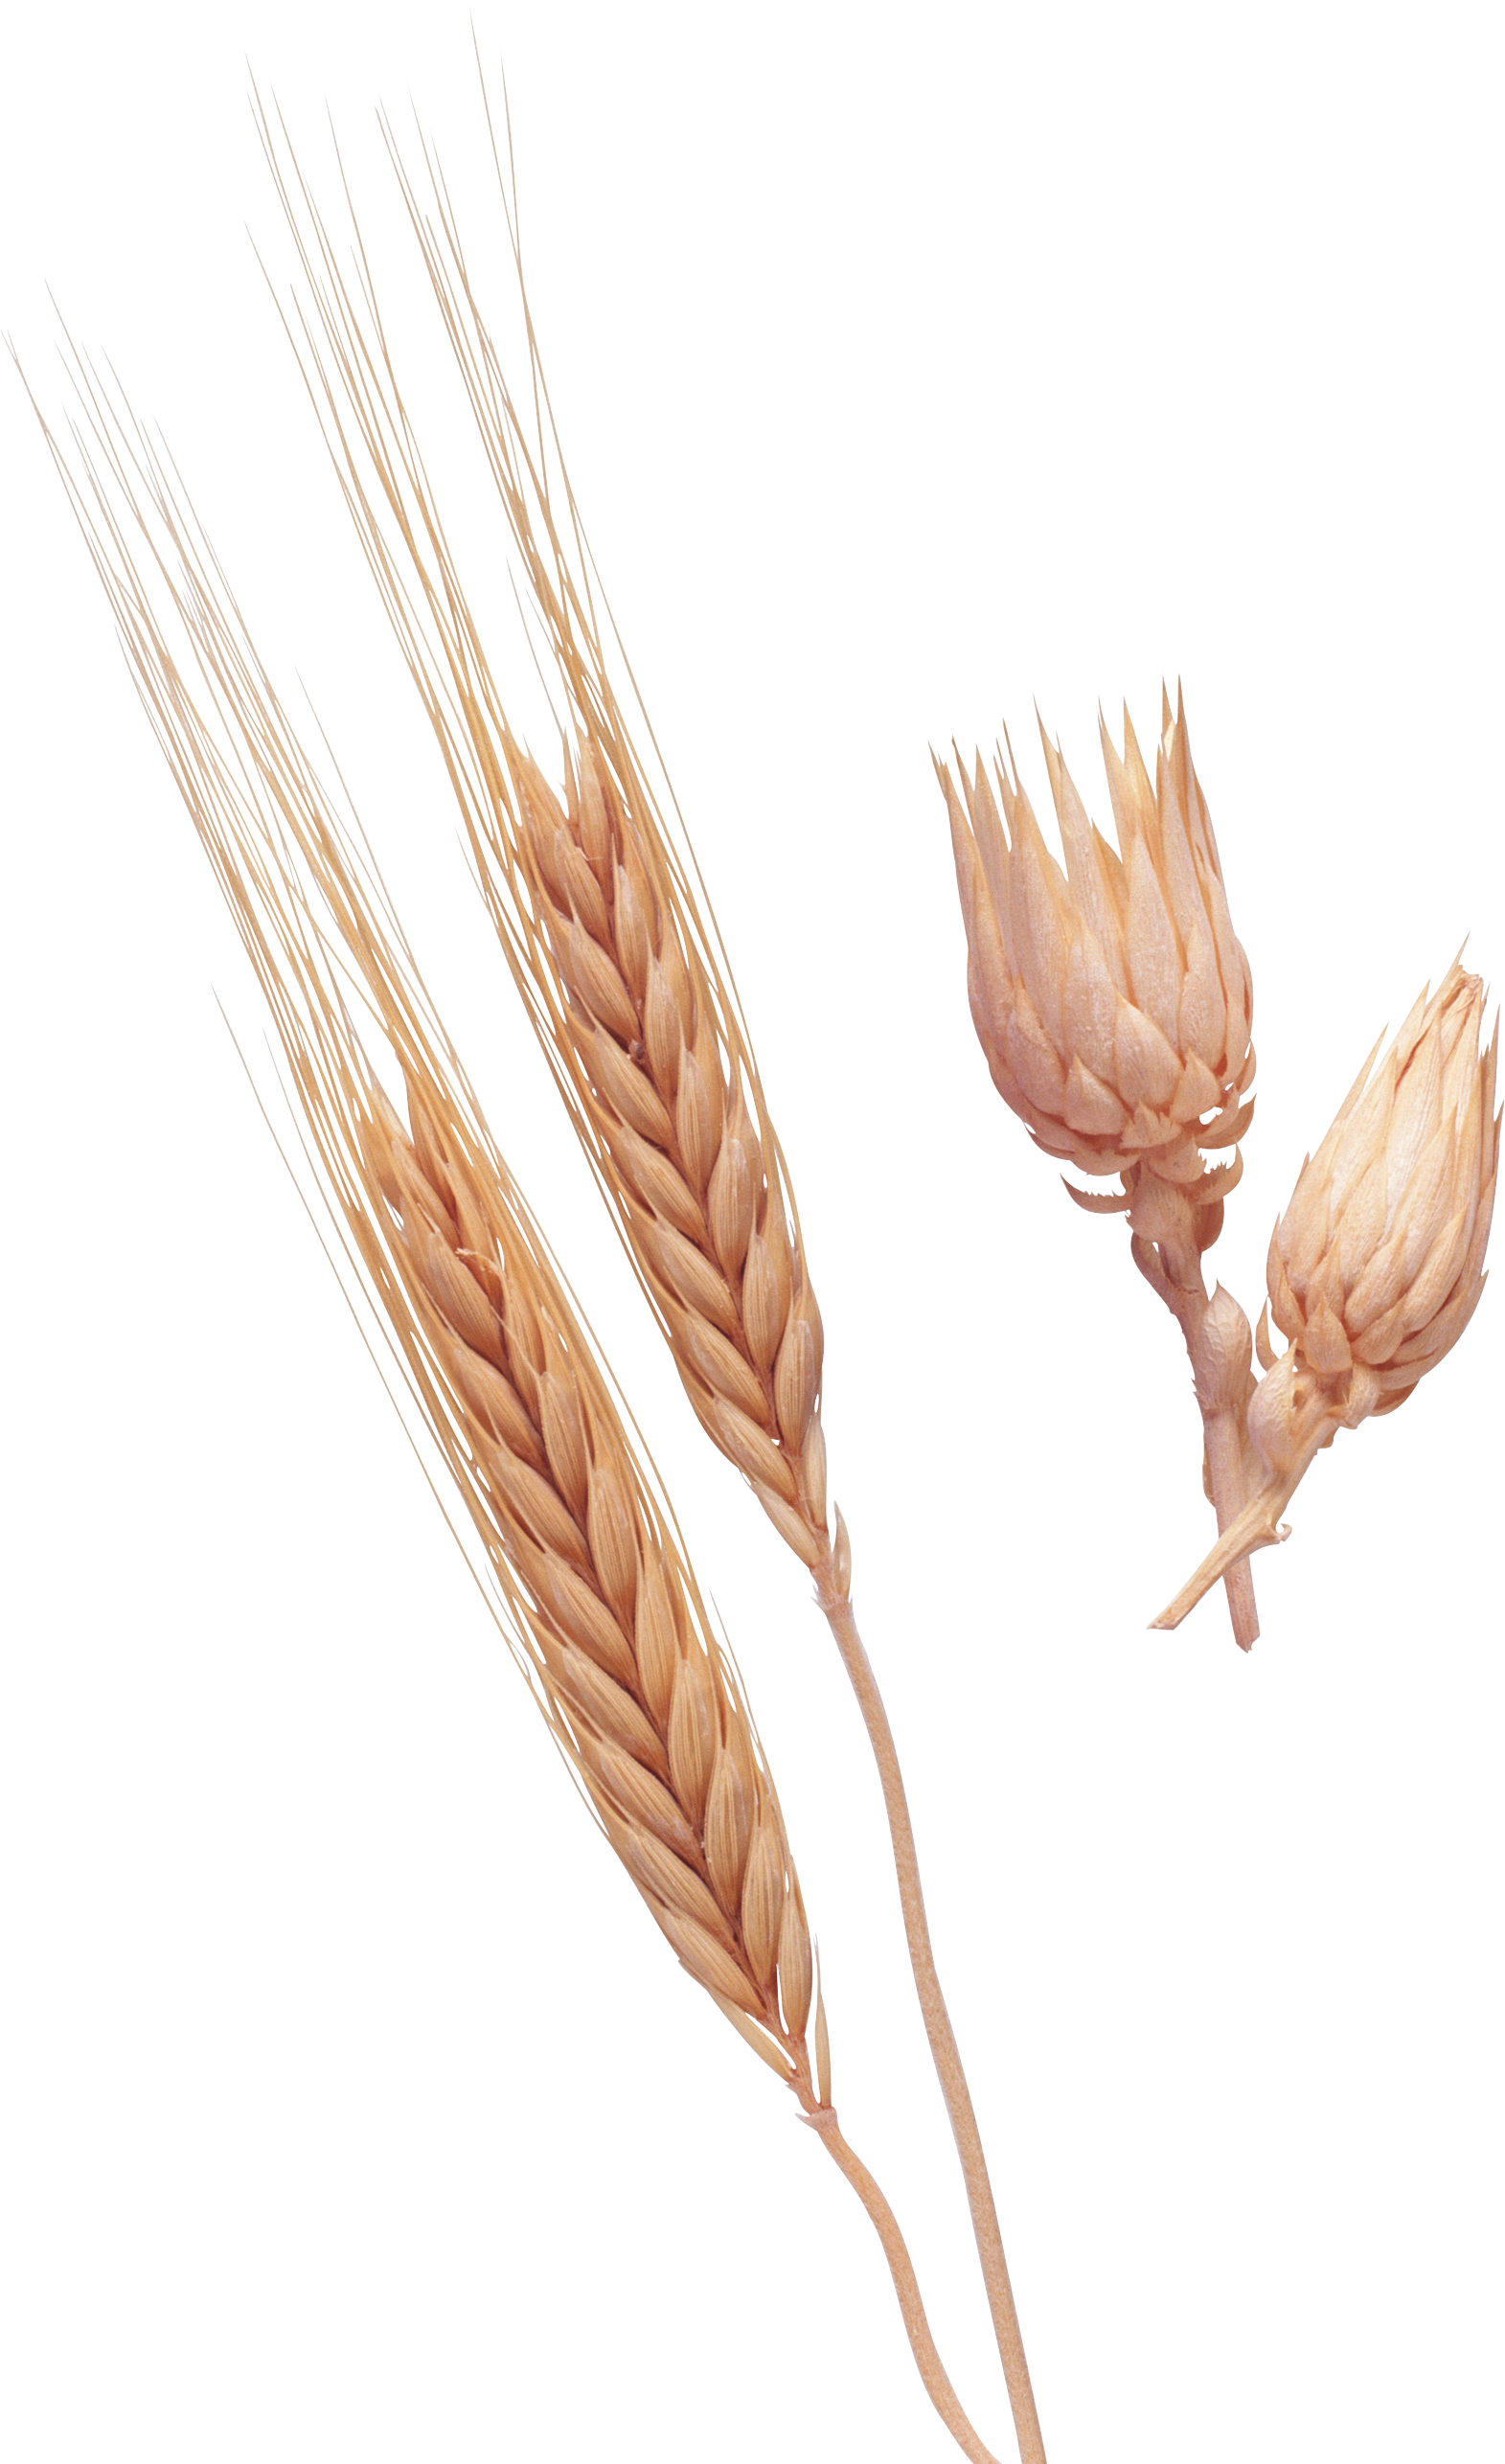 Png image purepng free. Wheat clipart rye